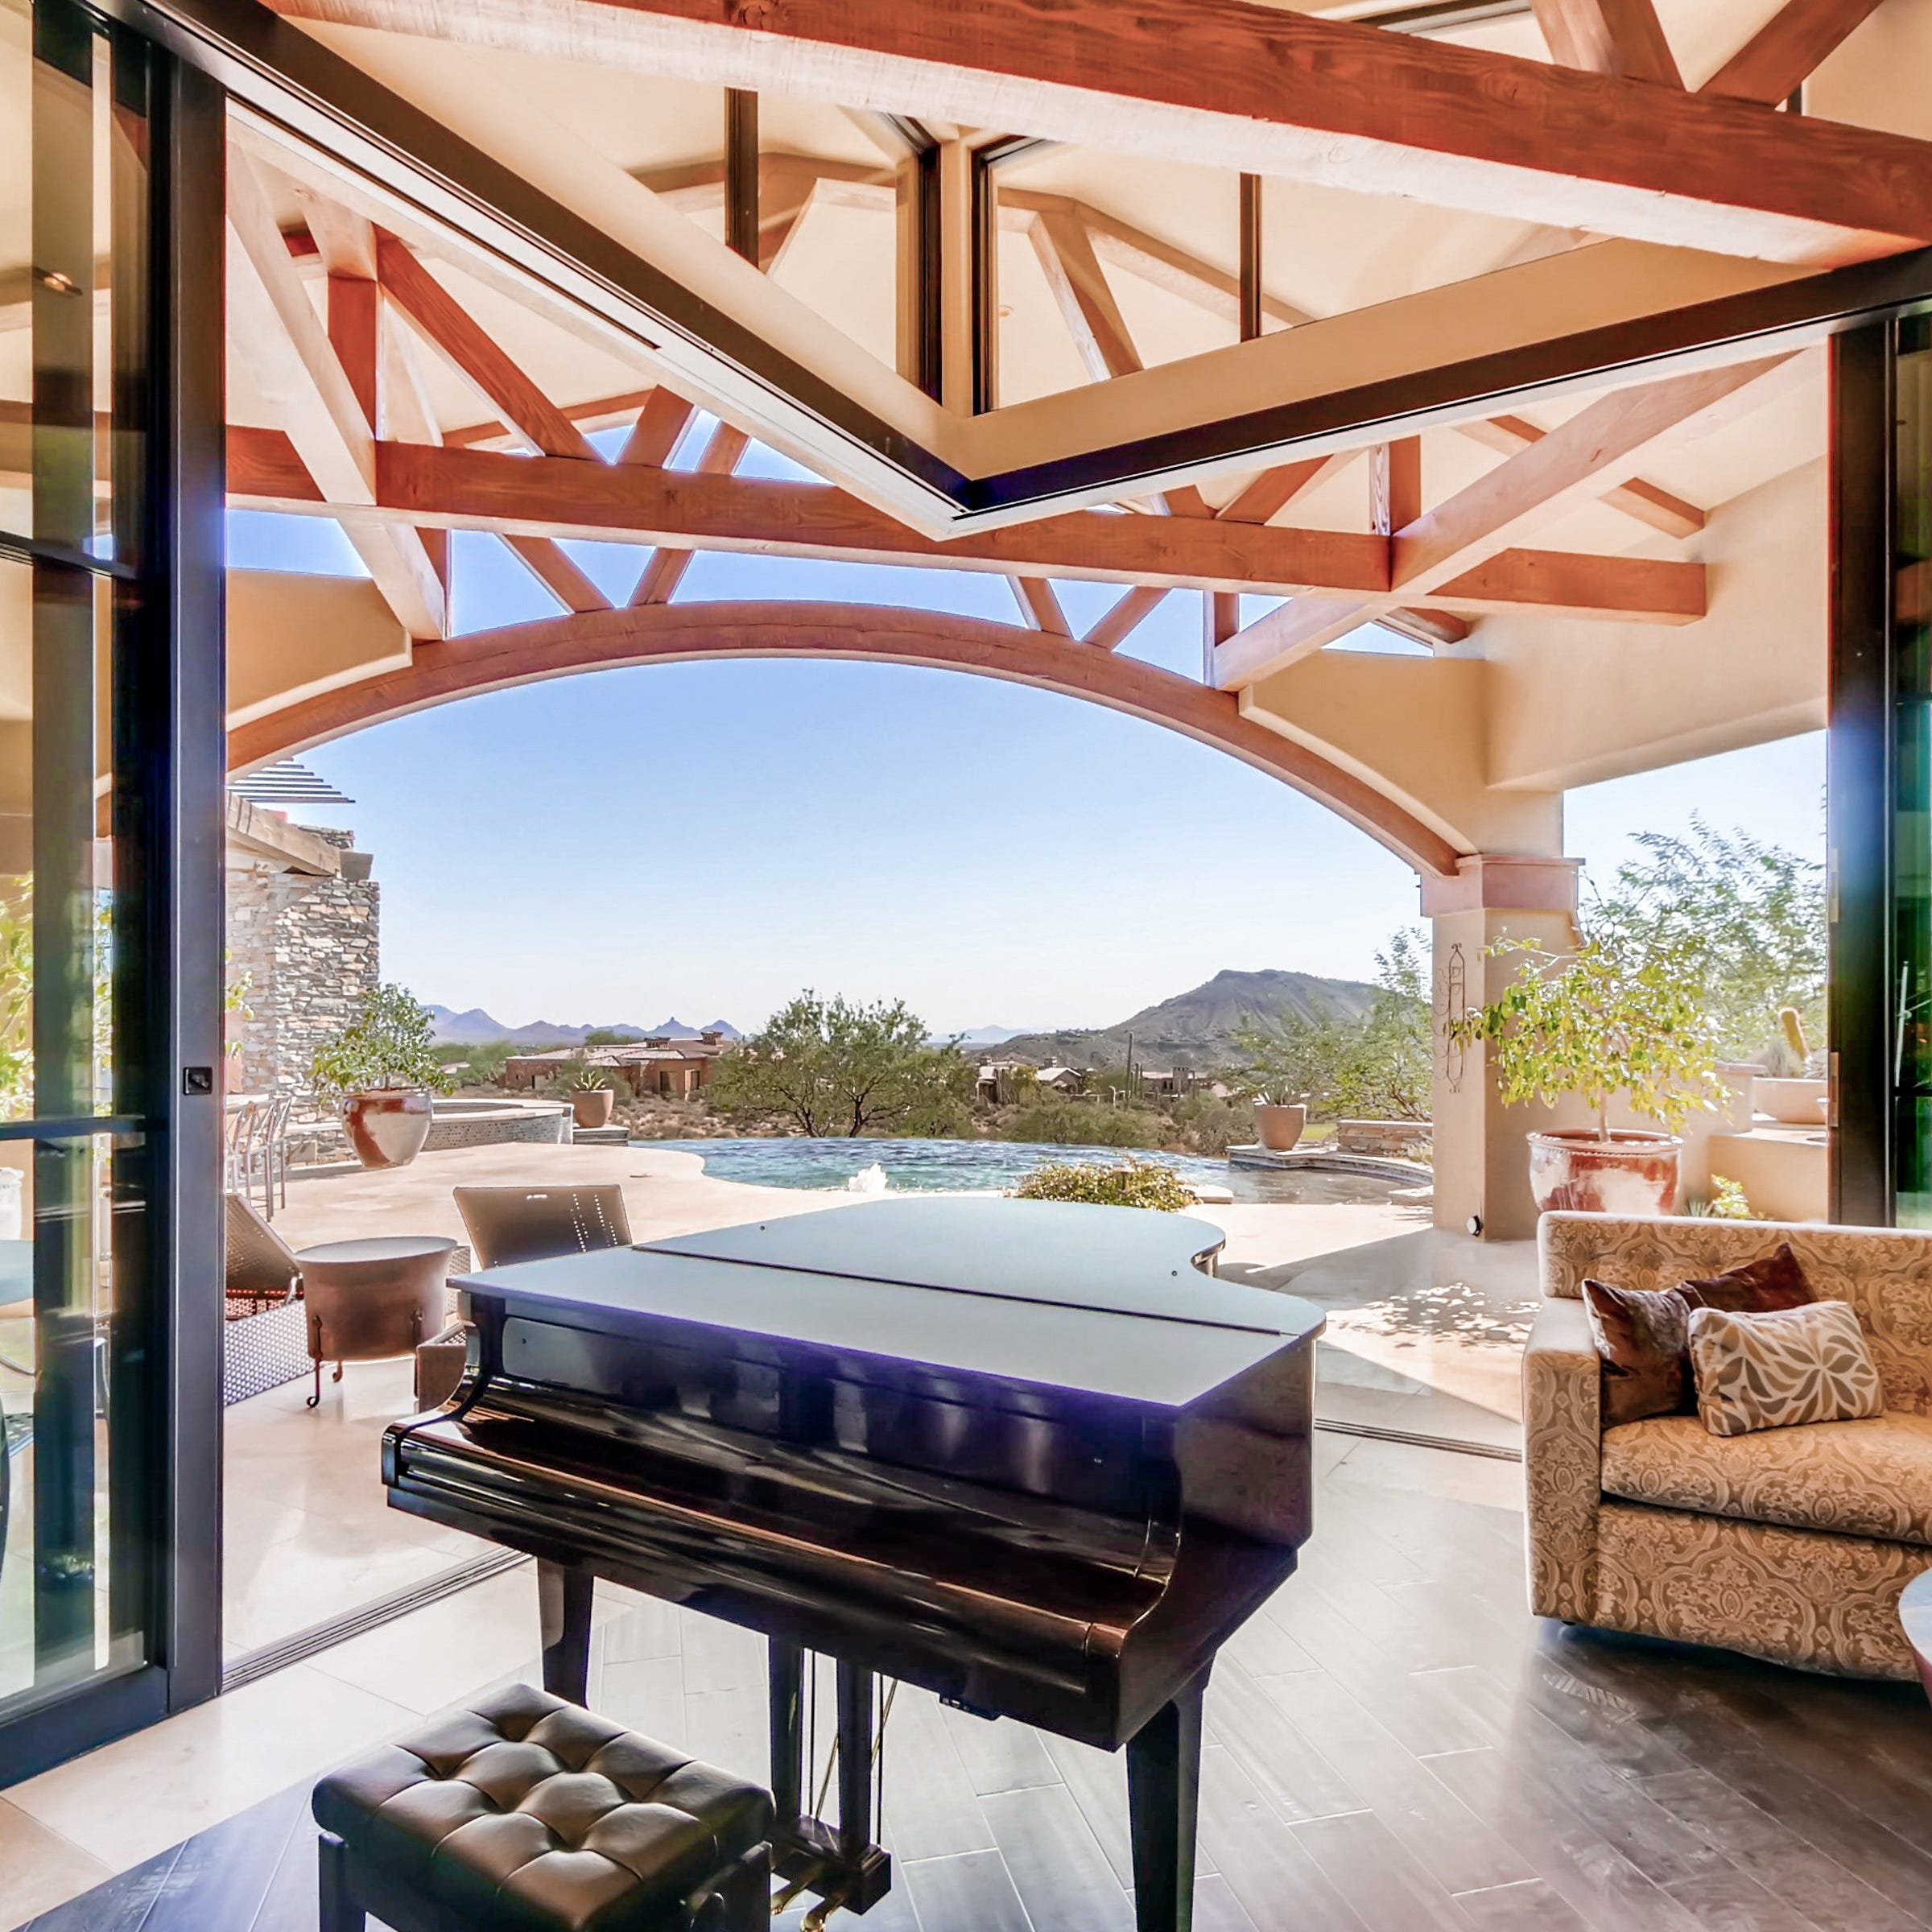 Scottsdale house with an outdoor kitchen and unobstructed mountain views sells for $3.45M